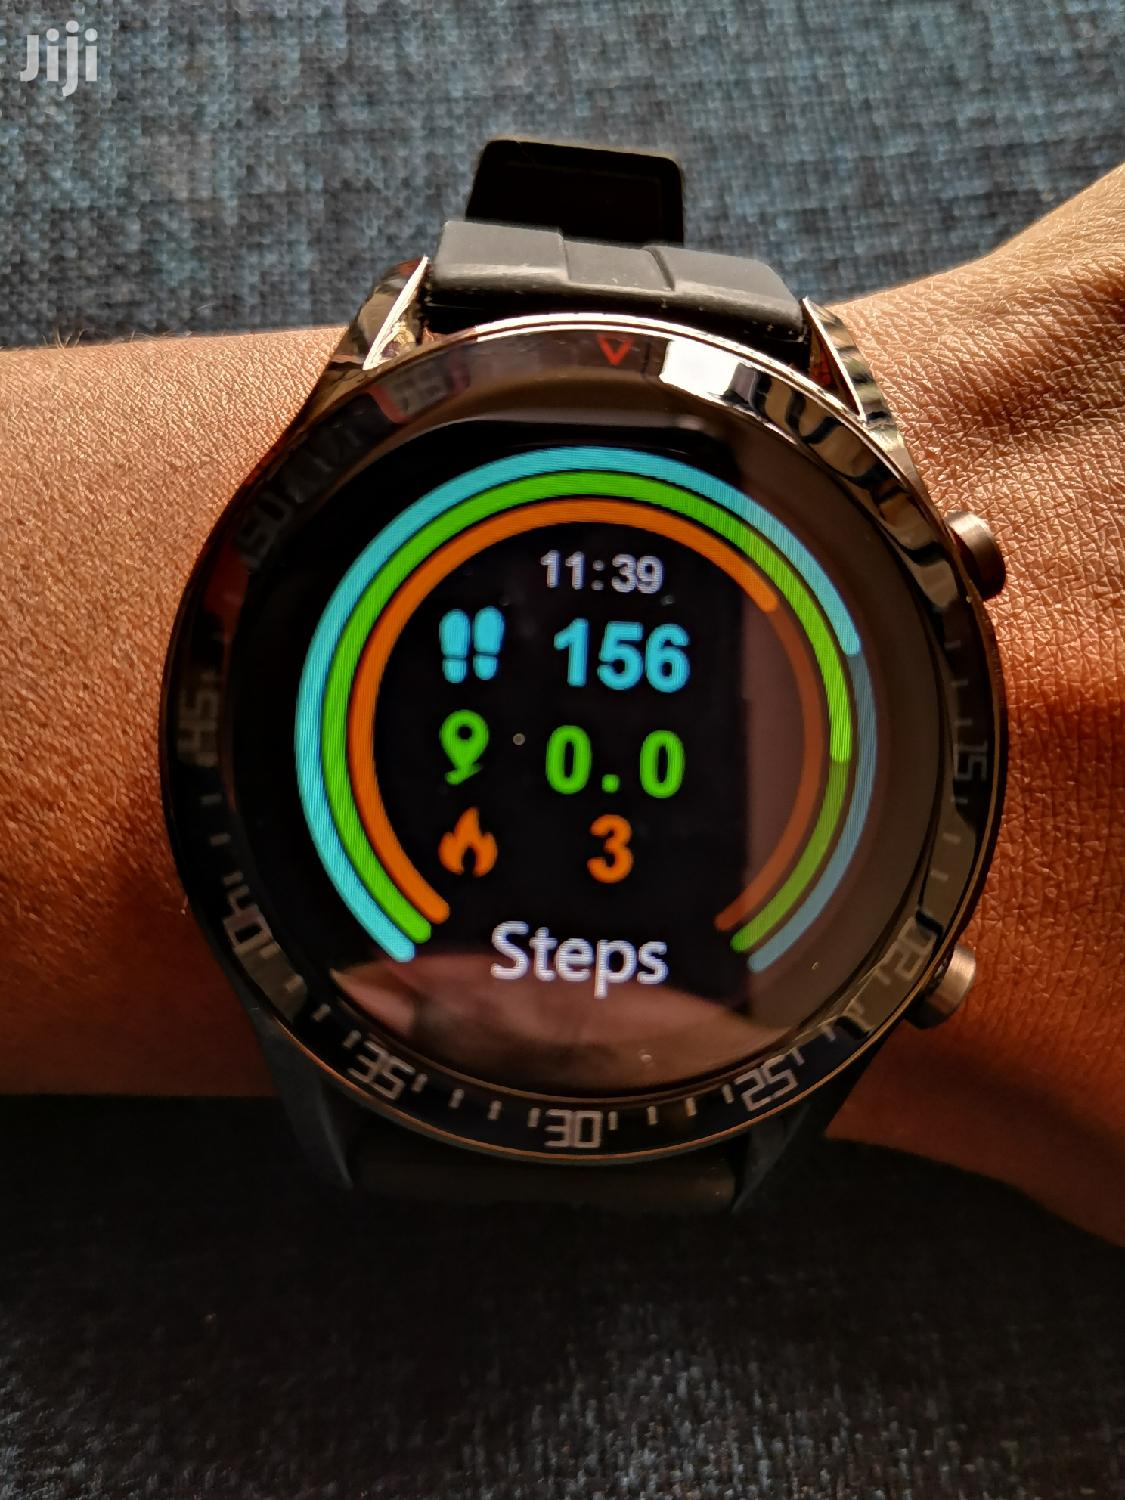 C2 Water Proof Smart Watch & Fitness Tracker | Smart Watches & Trackers for sale in Kahawa West, Nairobi, Kenya